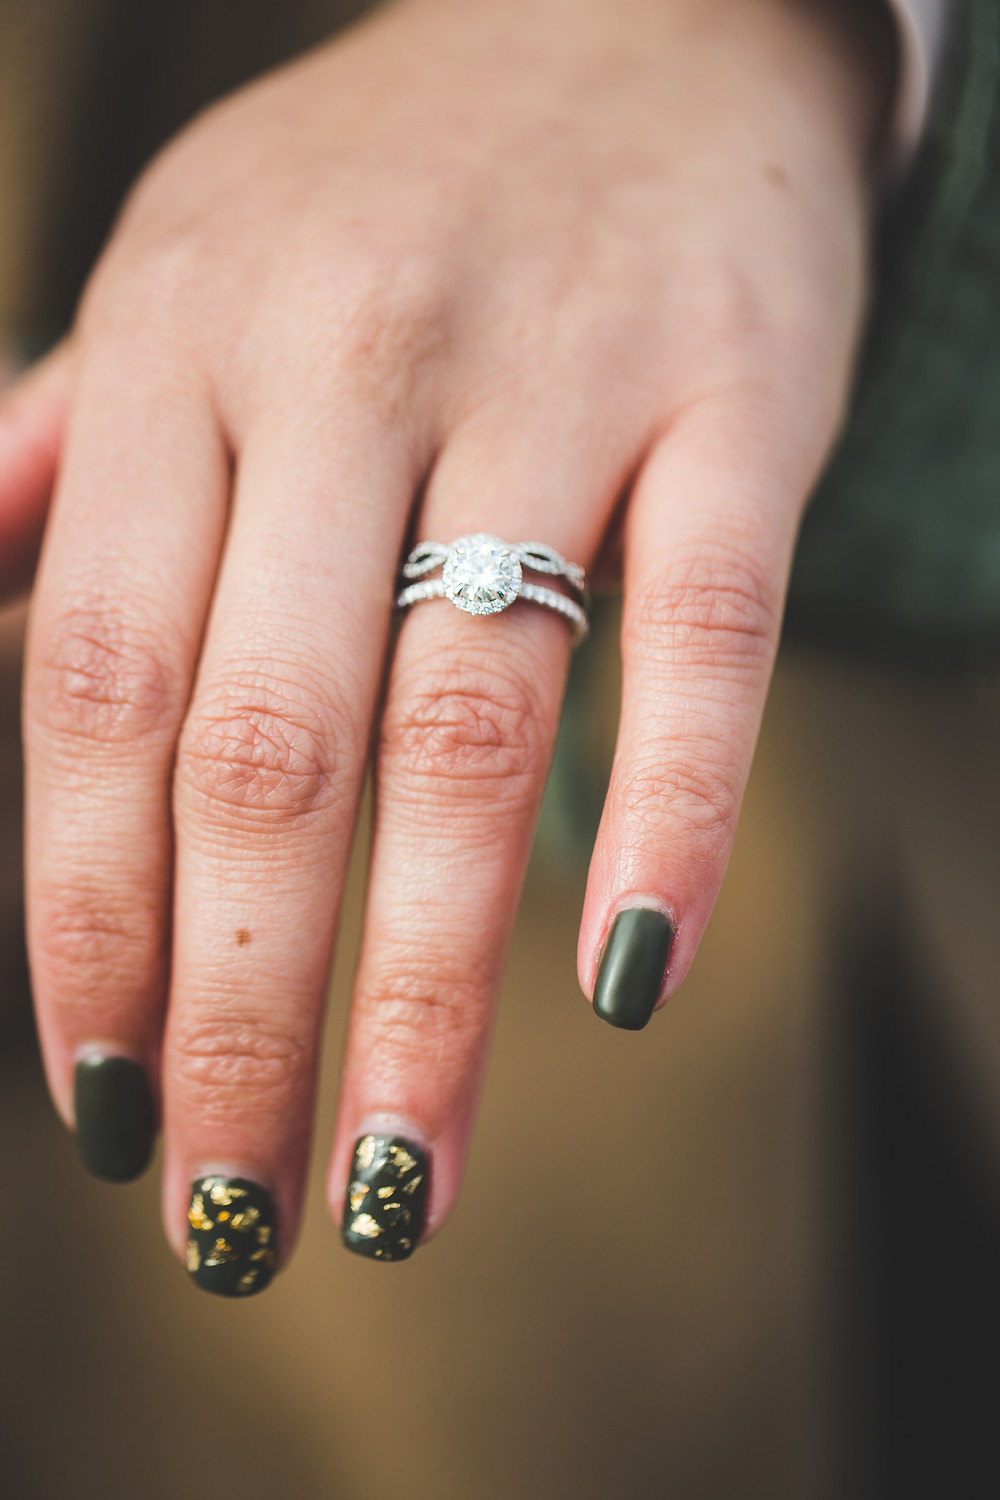 Dakota showing off her engagement ring the day he proposed at the Jefferson Memorial in Washington DC.